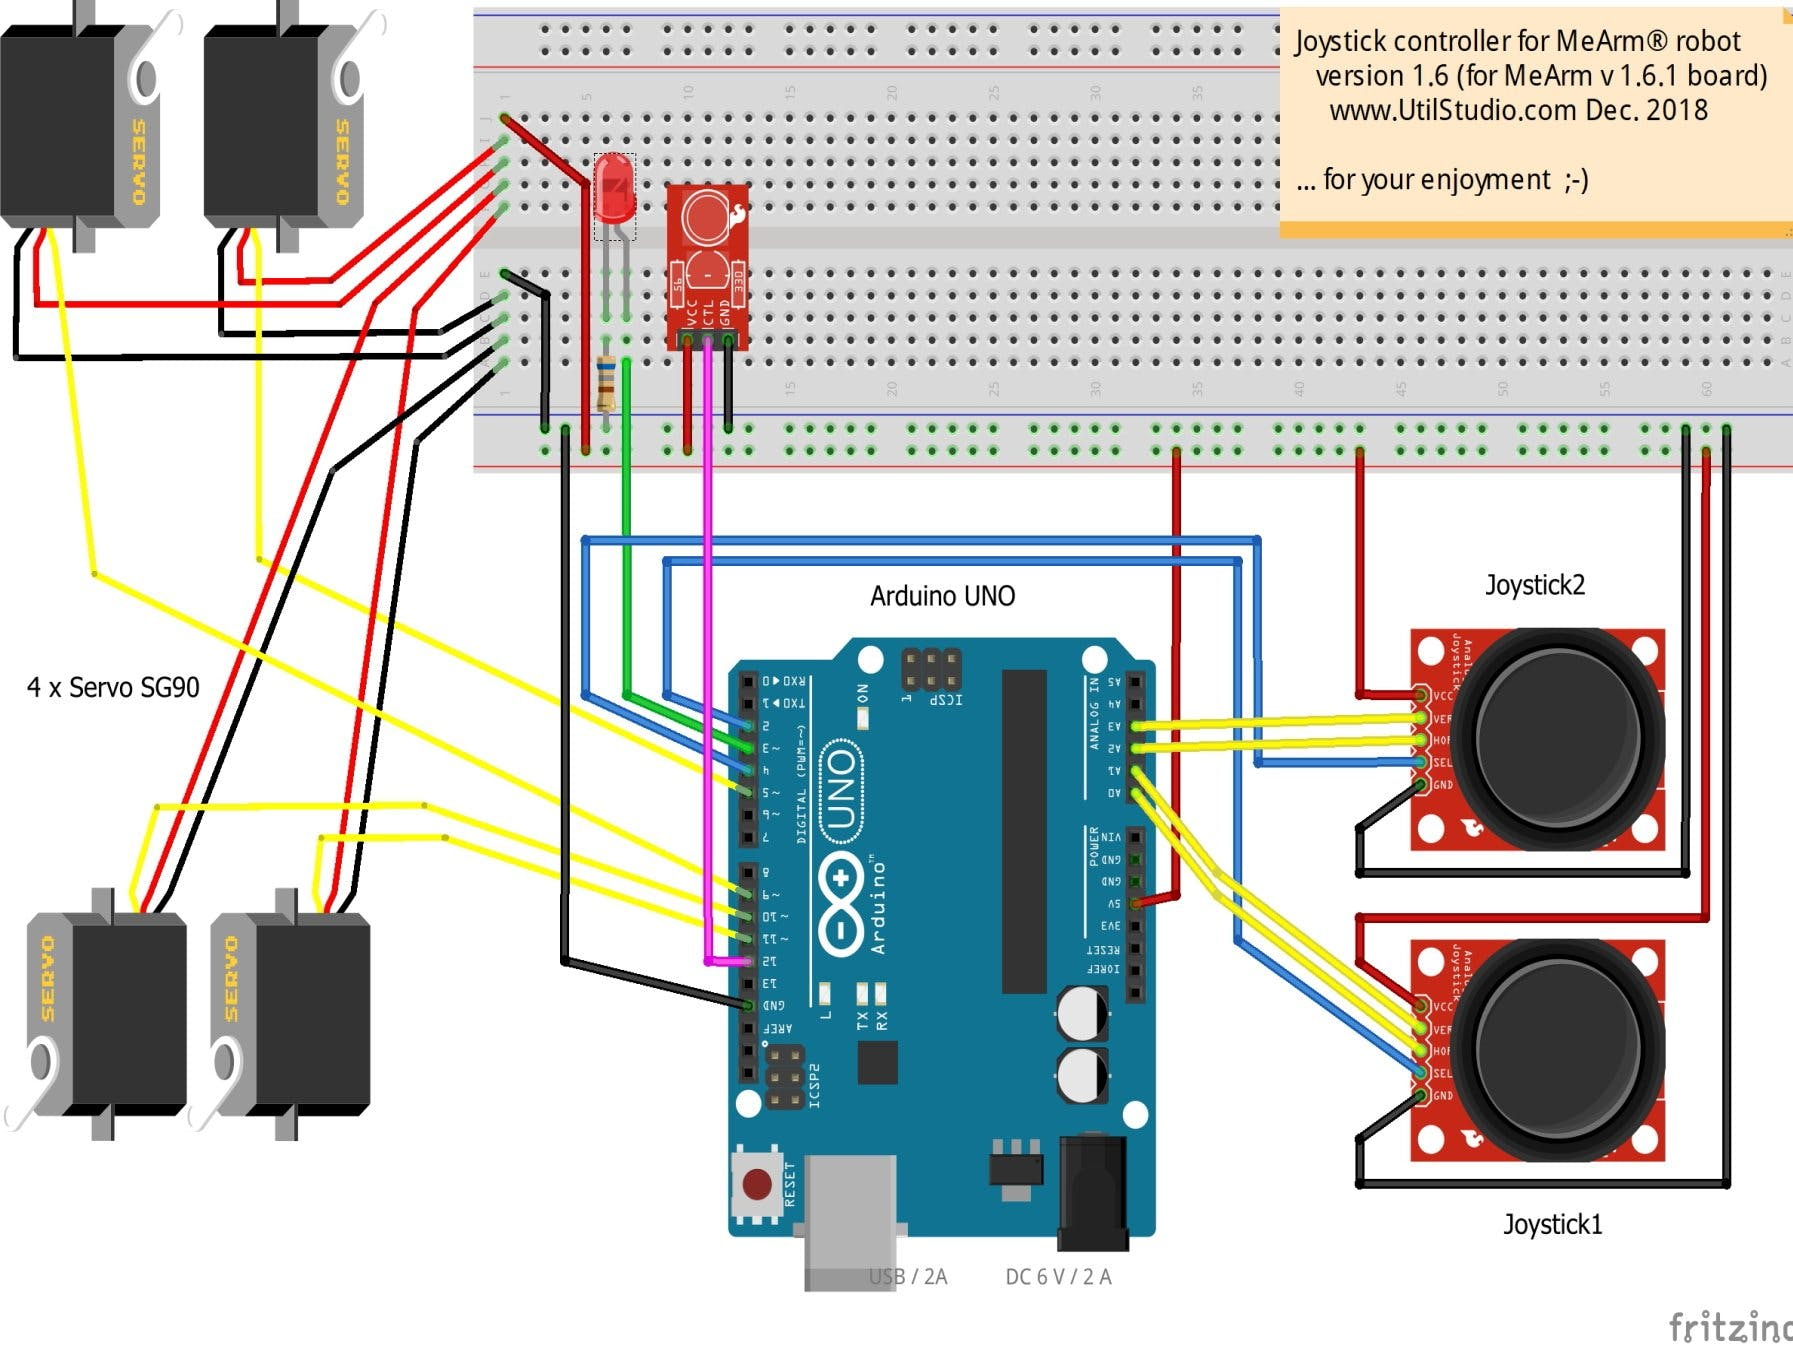 MeArm 1.6.1 Robot Joystick Board Recording Movements (IR)